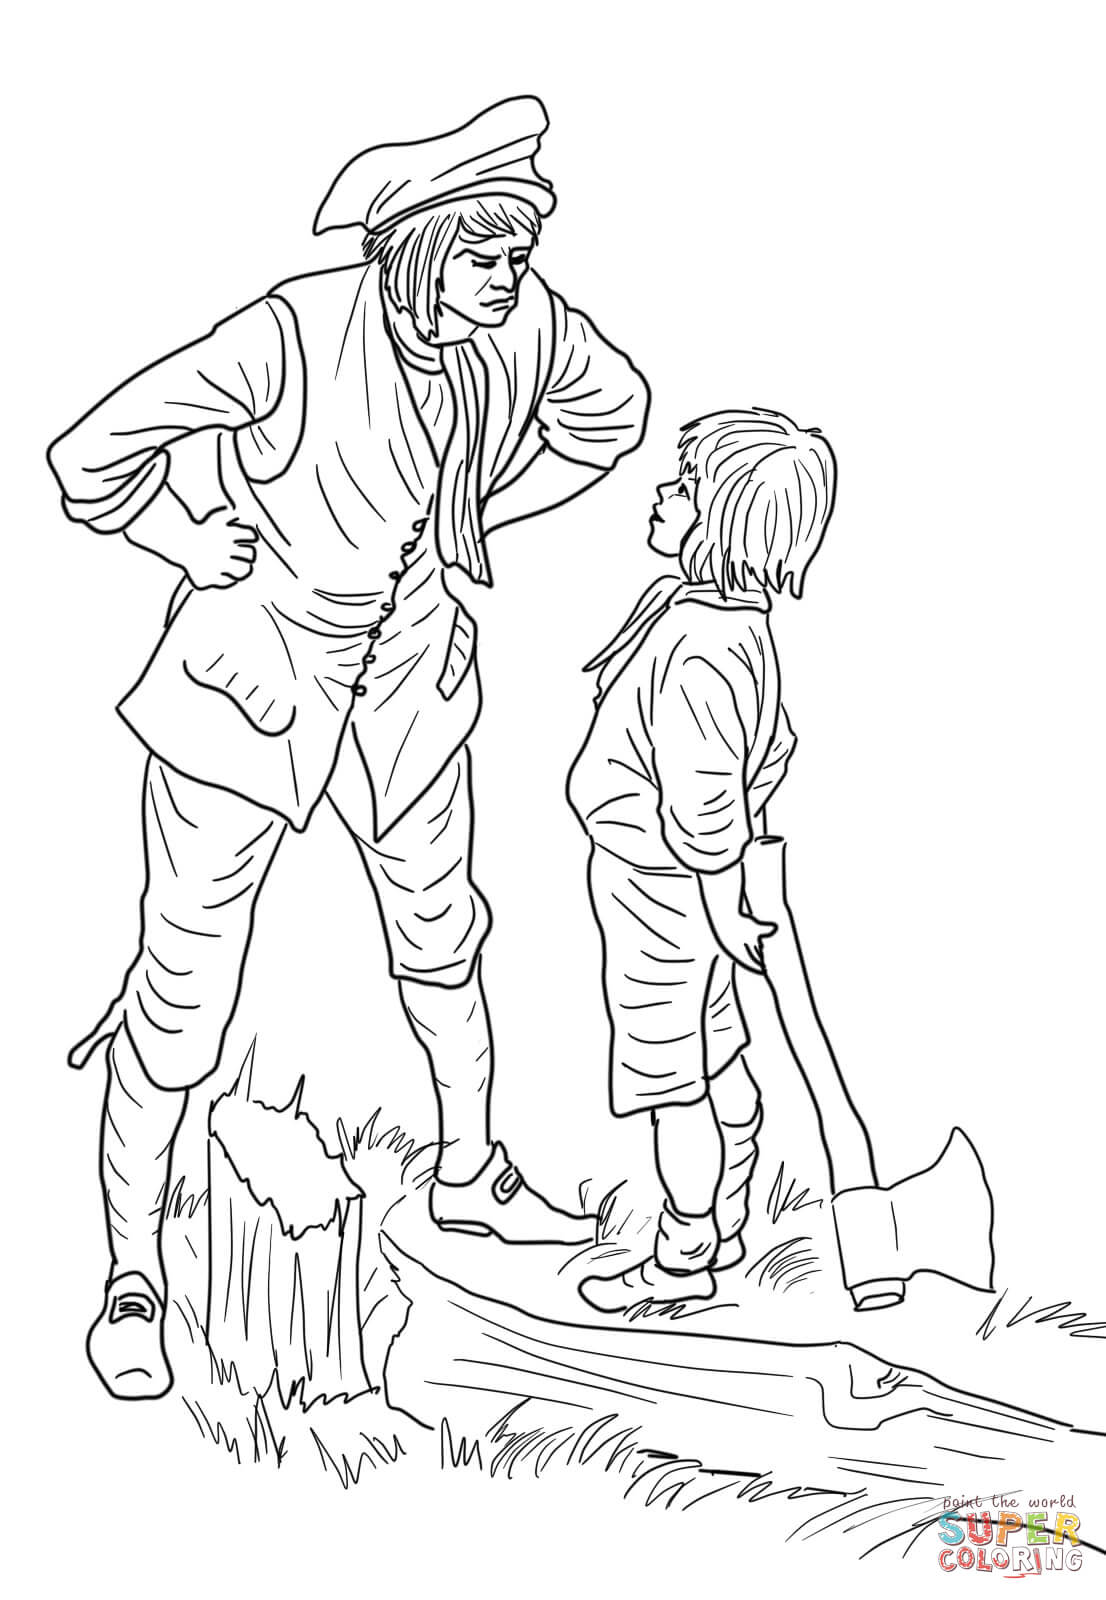 George Washington And The Cherry Tree Coloring Page